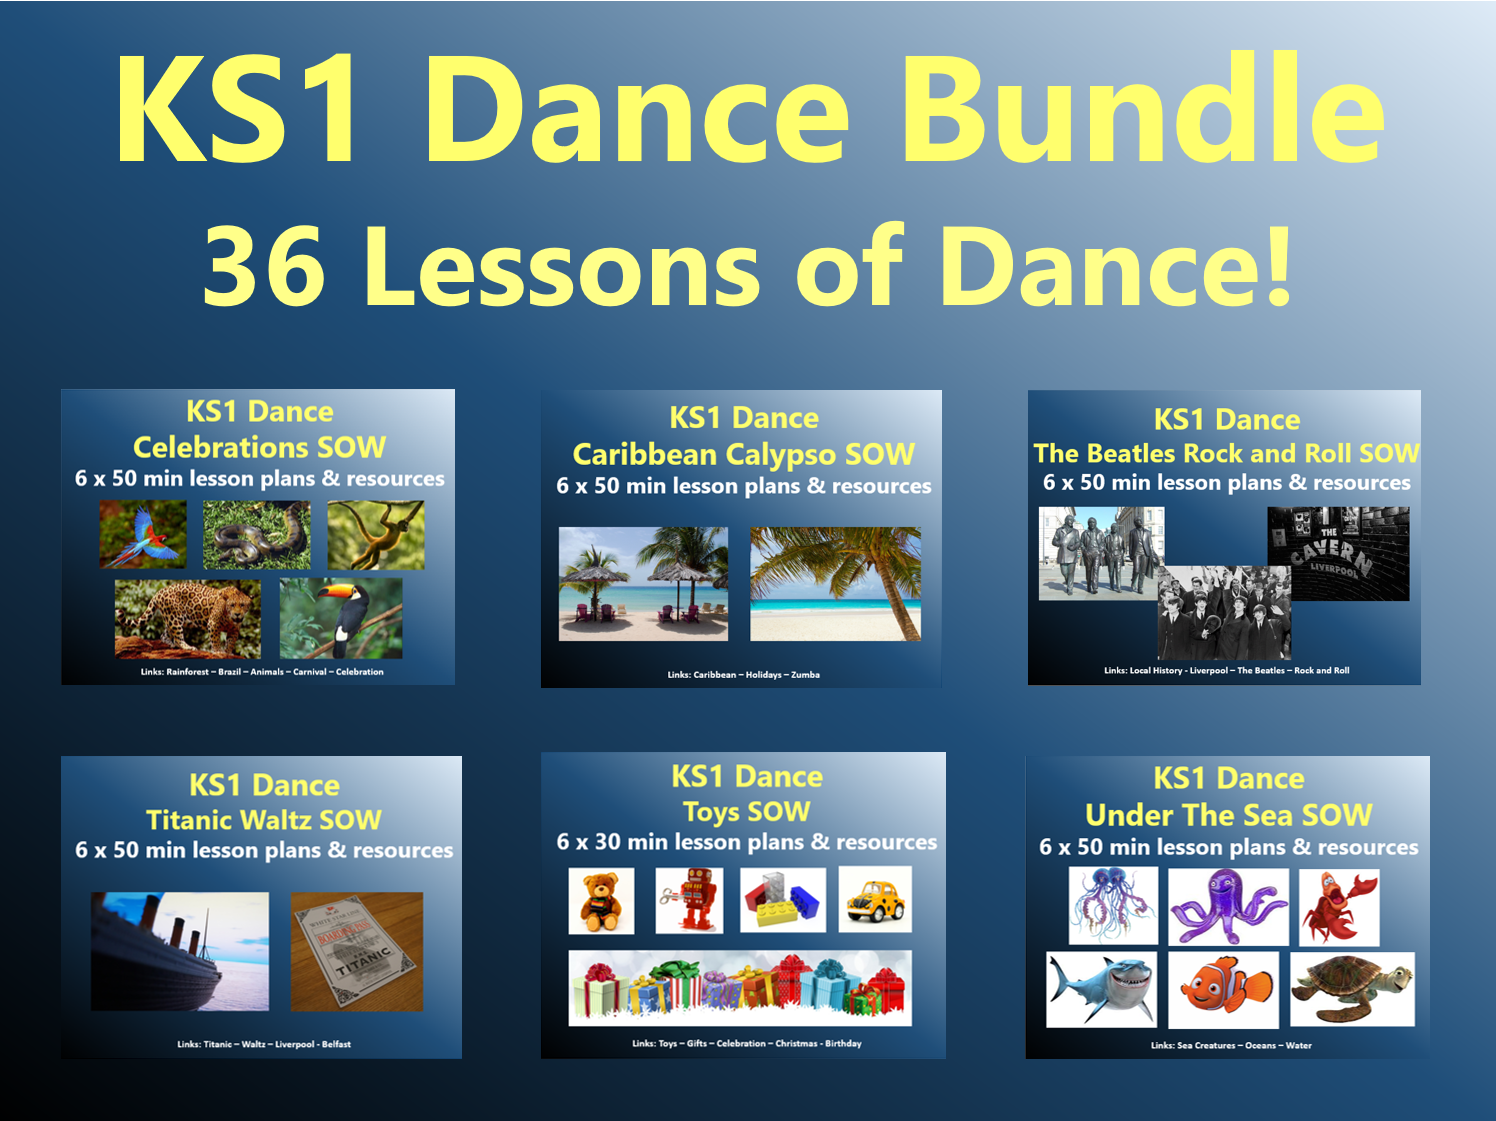 KS1 Dance Bundle - 36 Lessons of Dance!